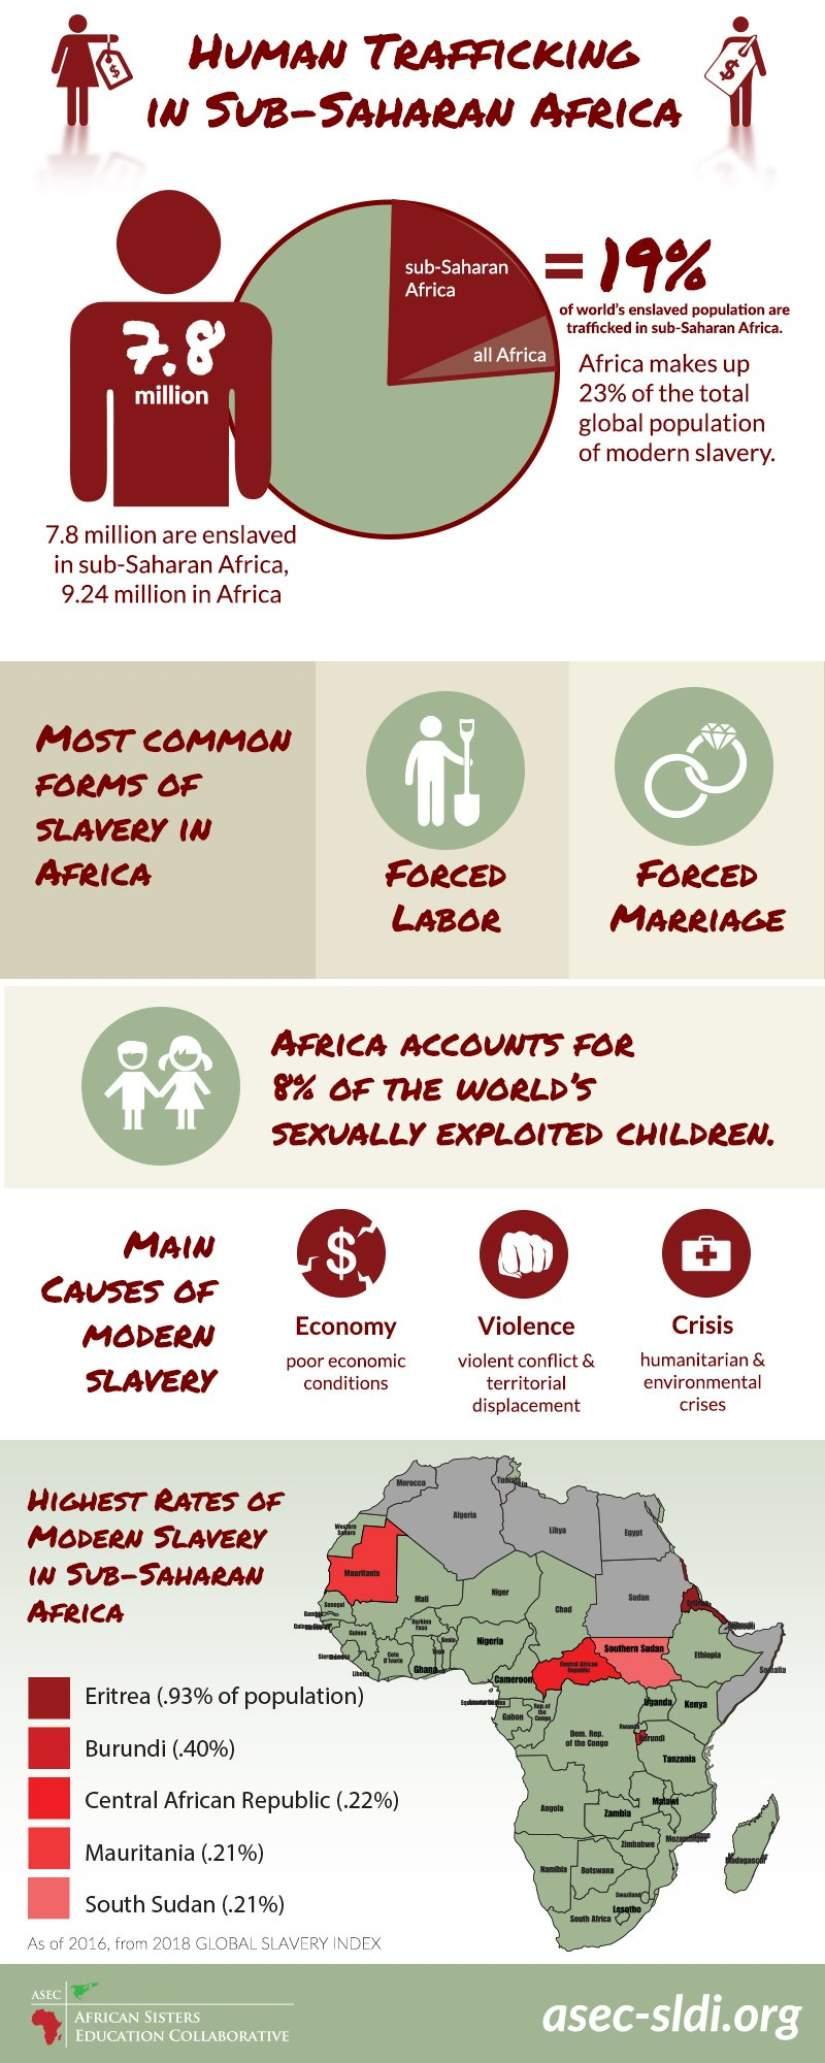 Modern Slavery Statistics in sub-Saharan Africa Infographic. Statistics as of 2016, from the 2018 Global Slavery Index.